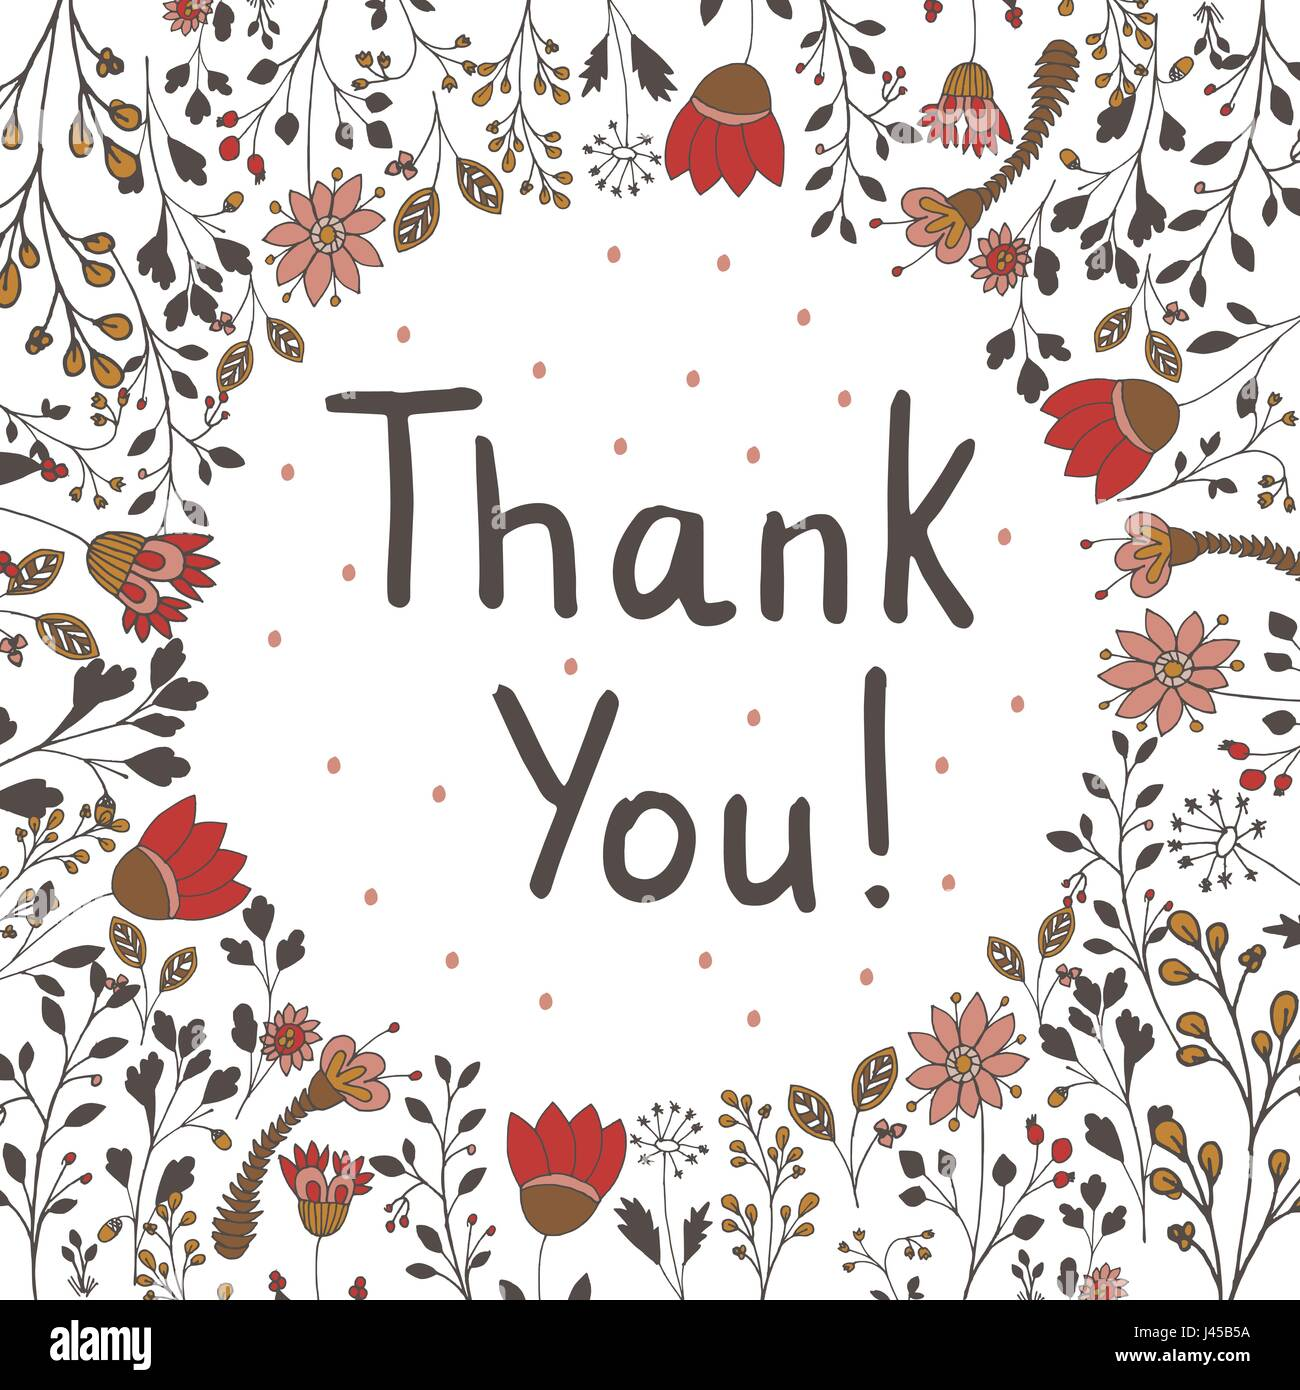 Thank You. Hand drawn lettering inside of doodle flowers. Can be used for card. Vector illustration. - Stock Vector